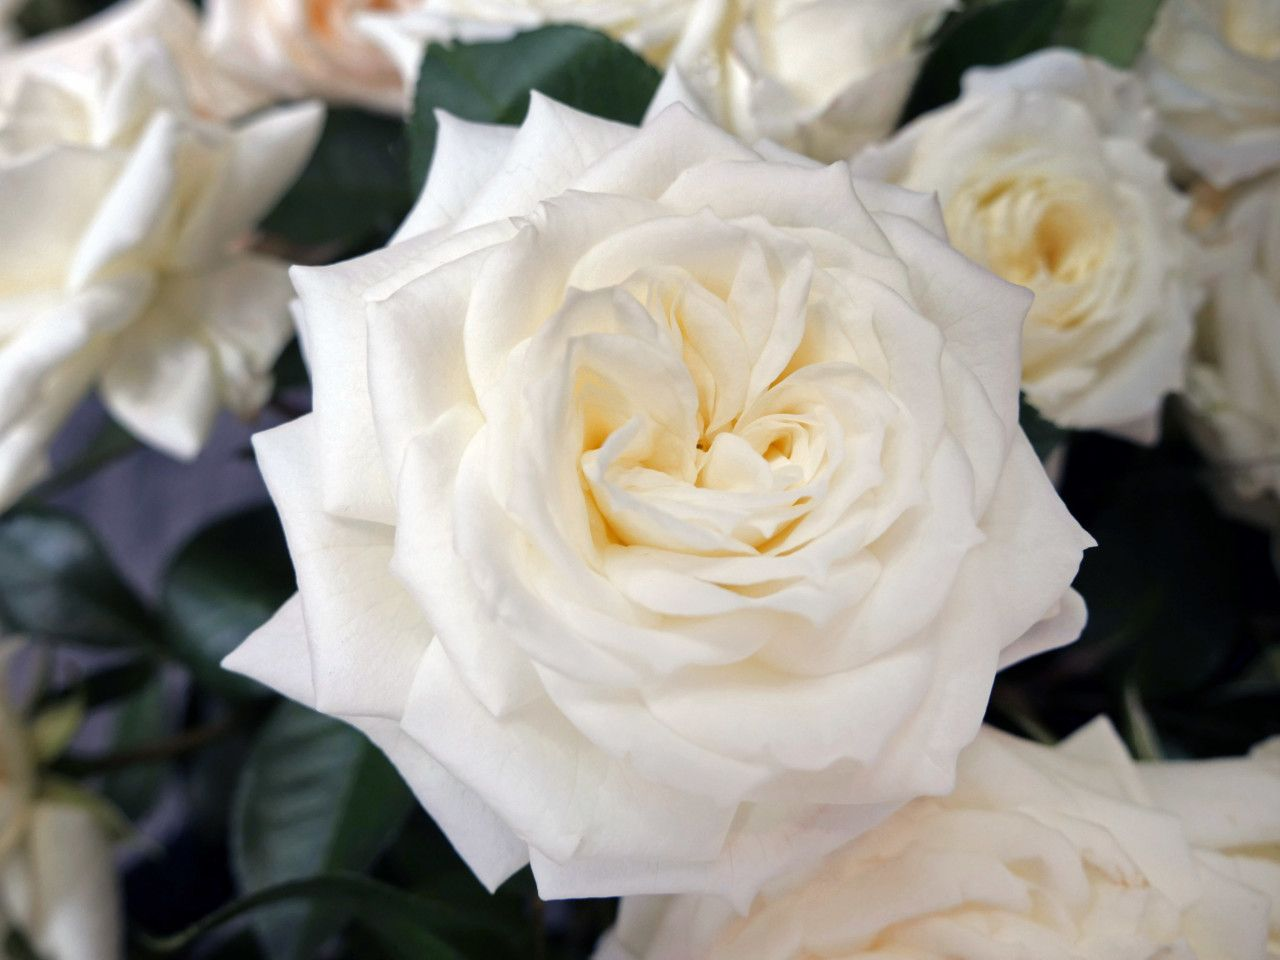 Alabaster Has A Light Lilac Fragrance A Great White Variety With